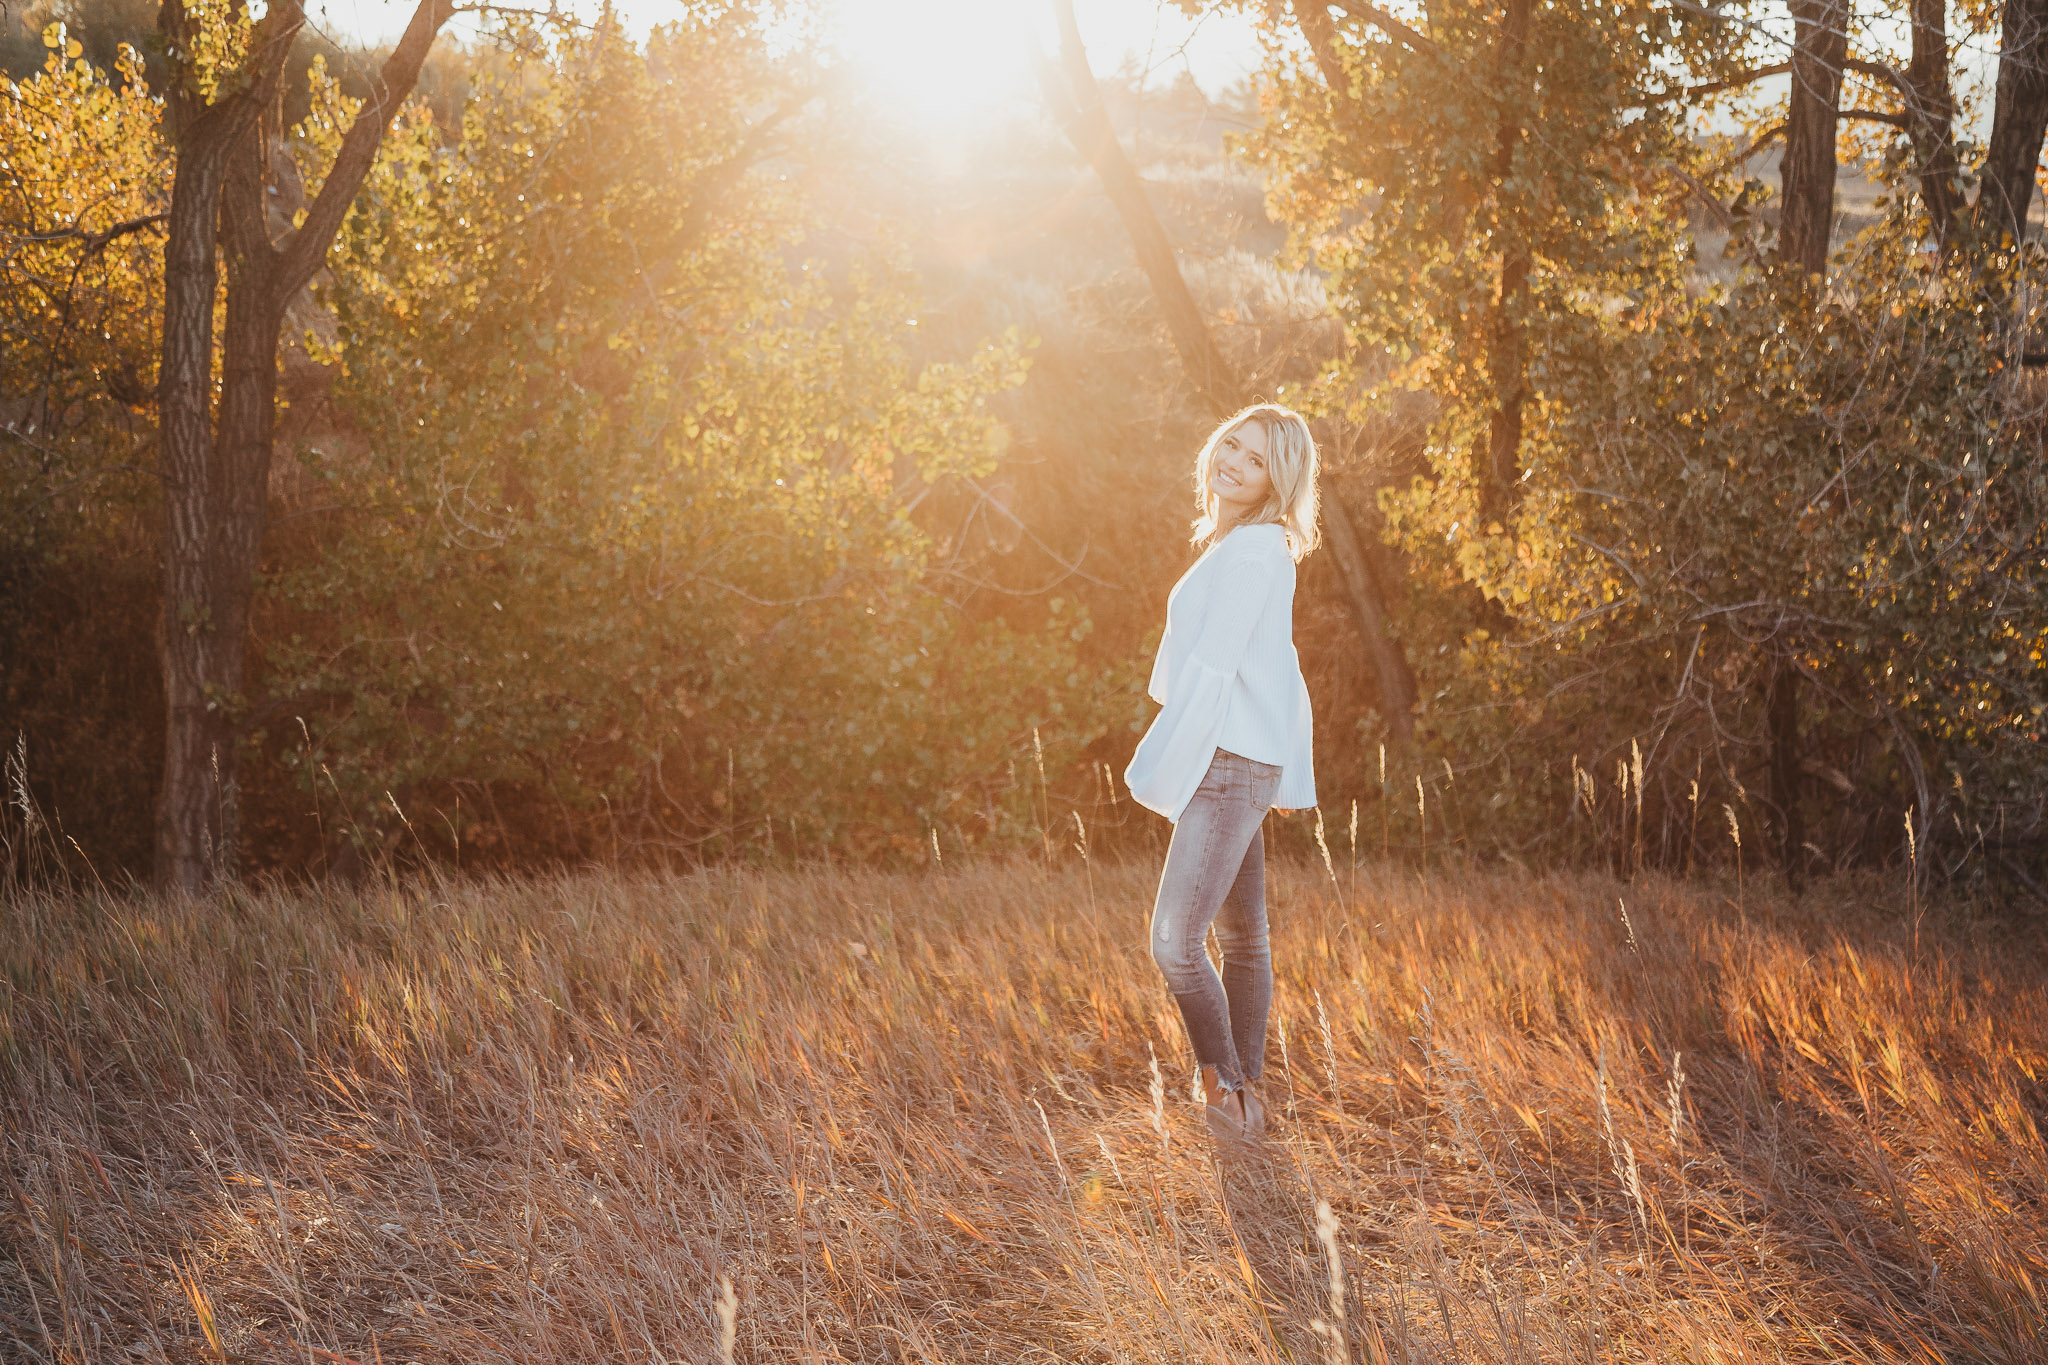 Highlands ranch, denver, senior photography, photographer, senior, fall outdoor golden light session, colorado beauty